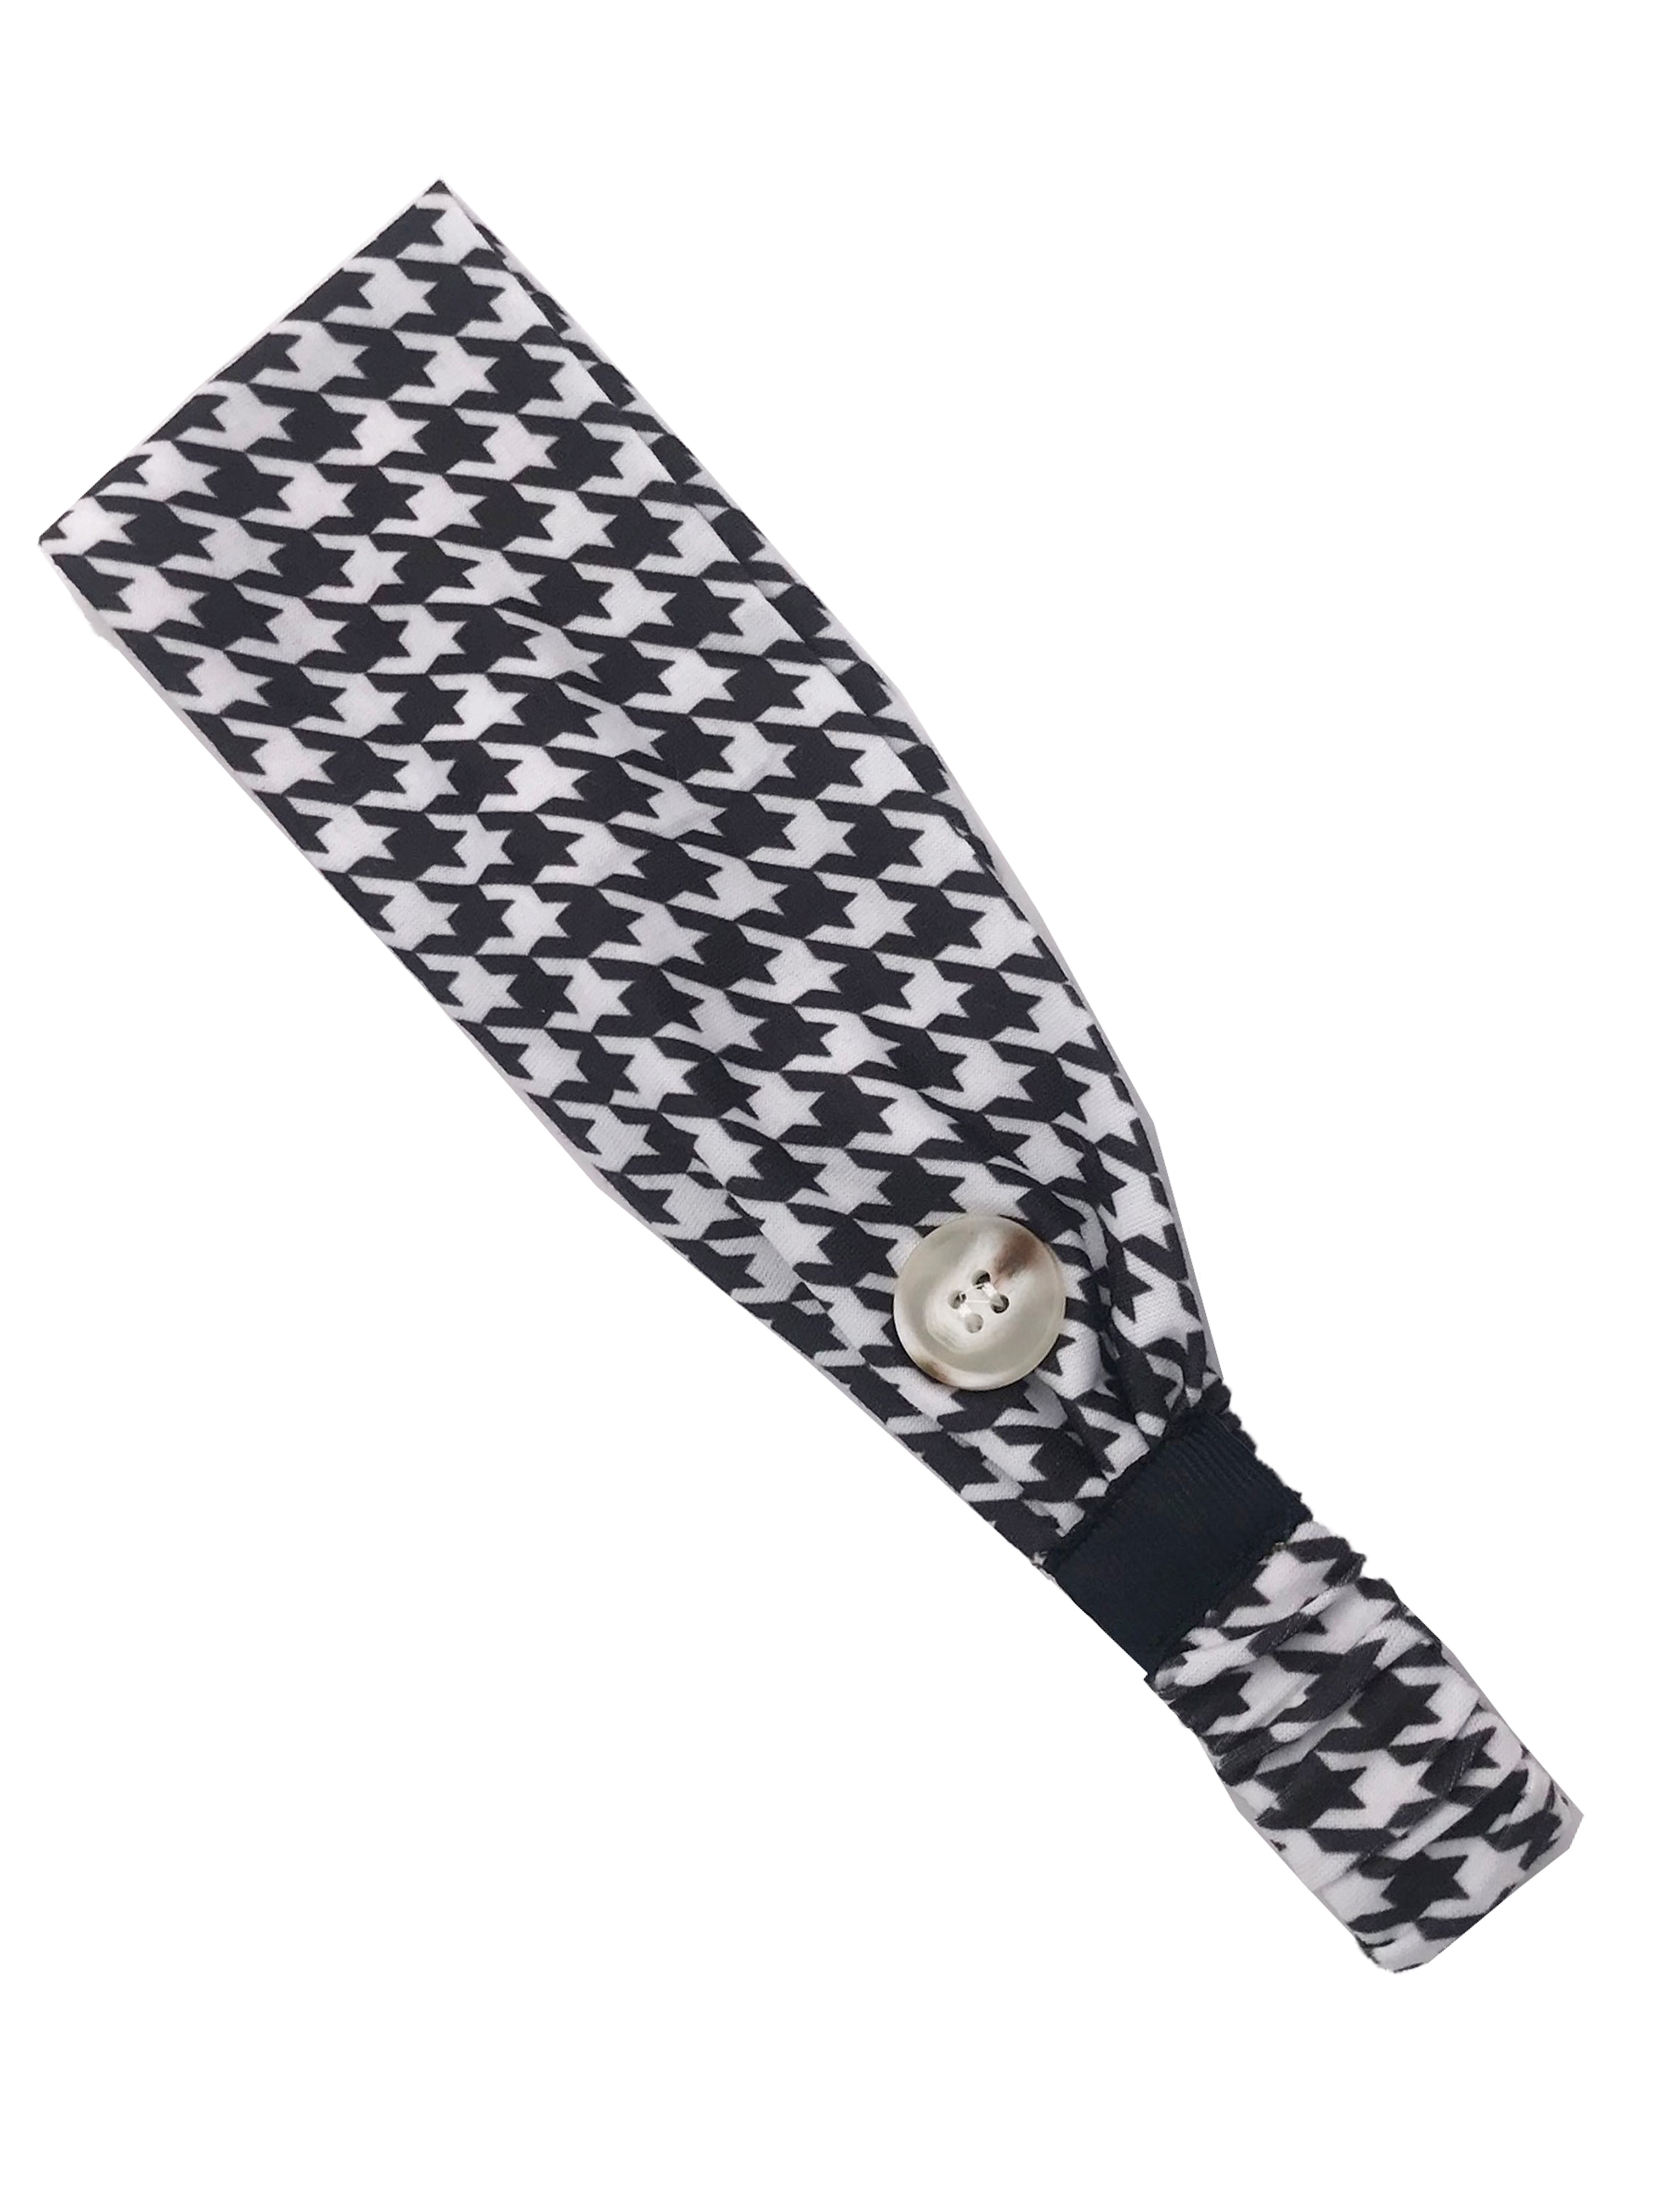 HB-2020 Adult Headband Houndstooth